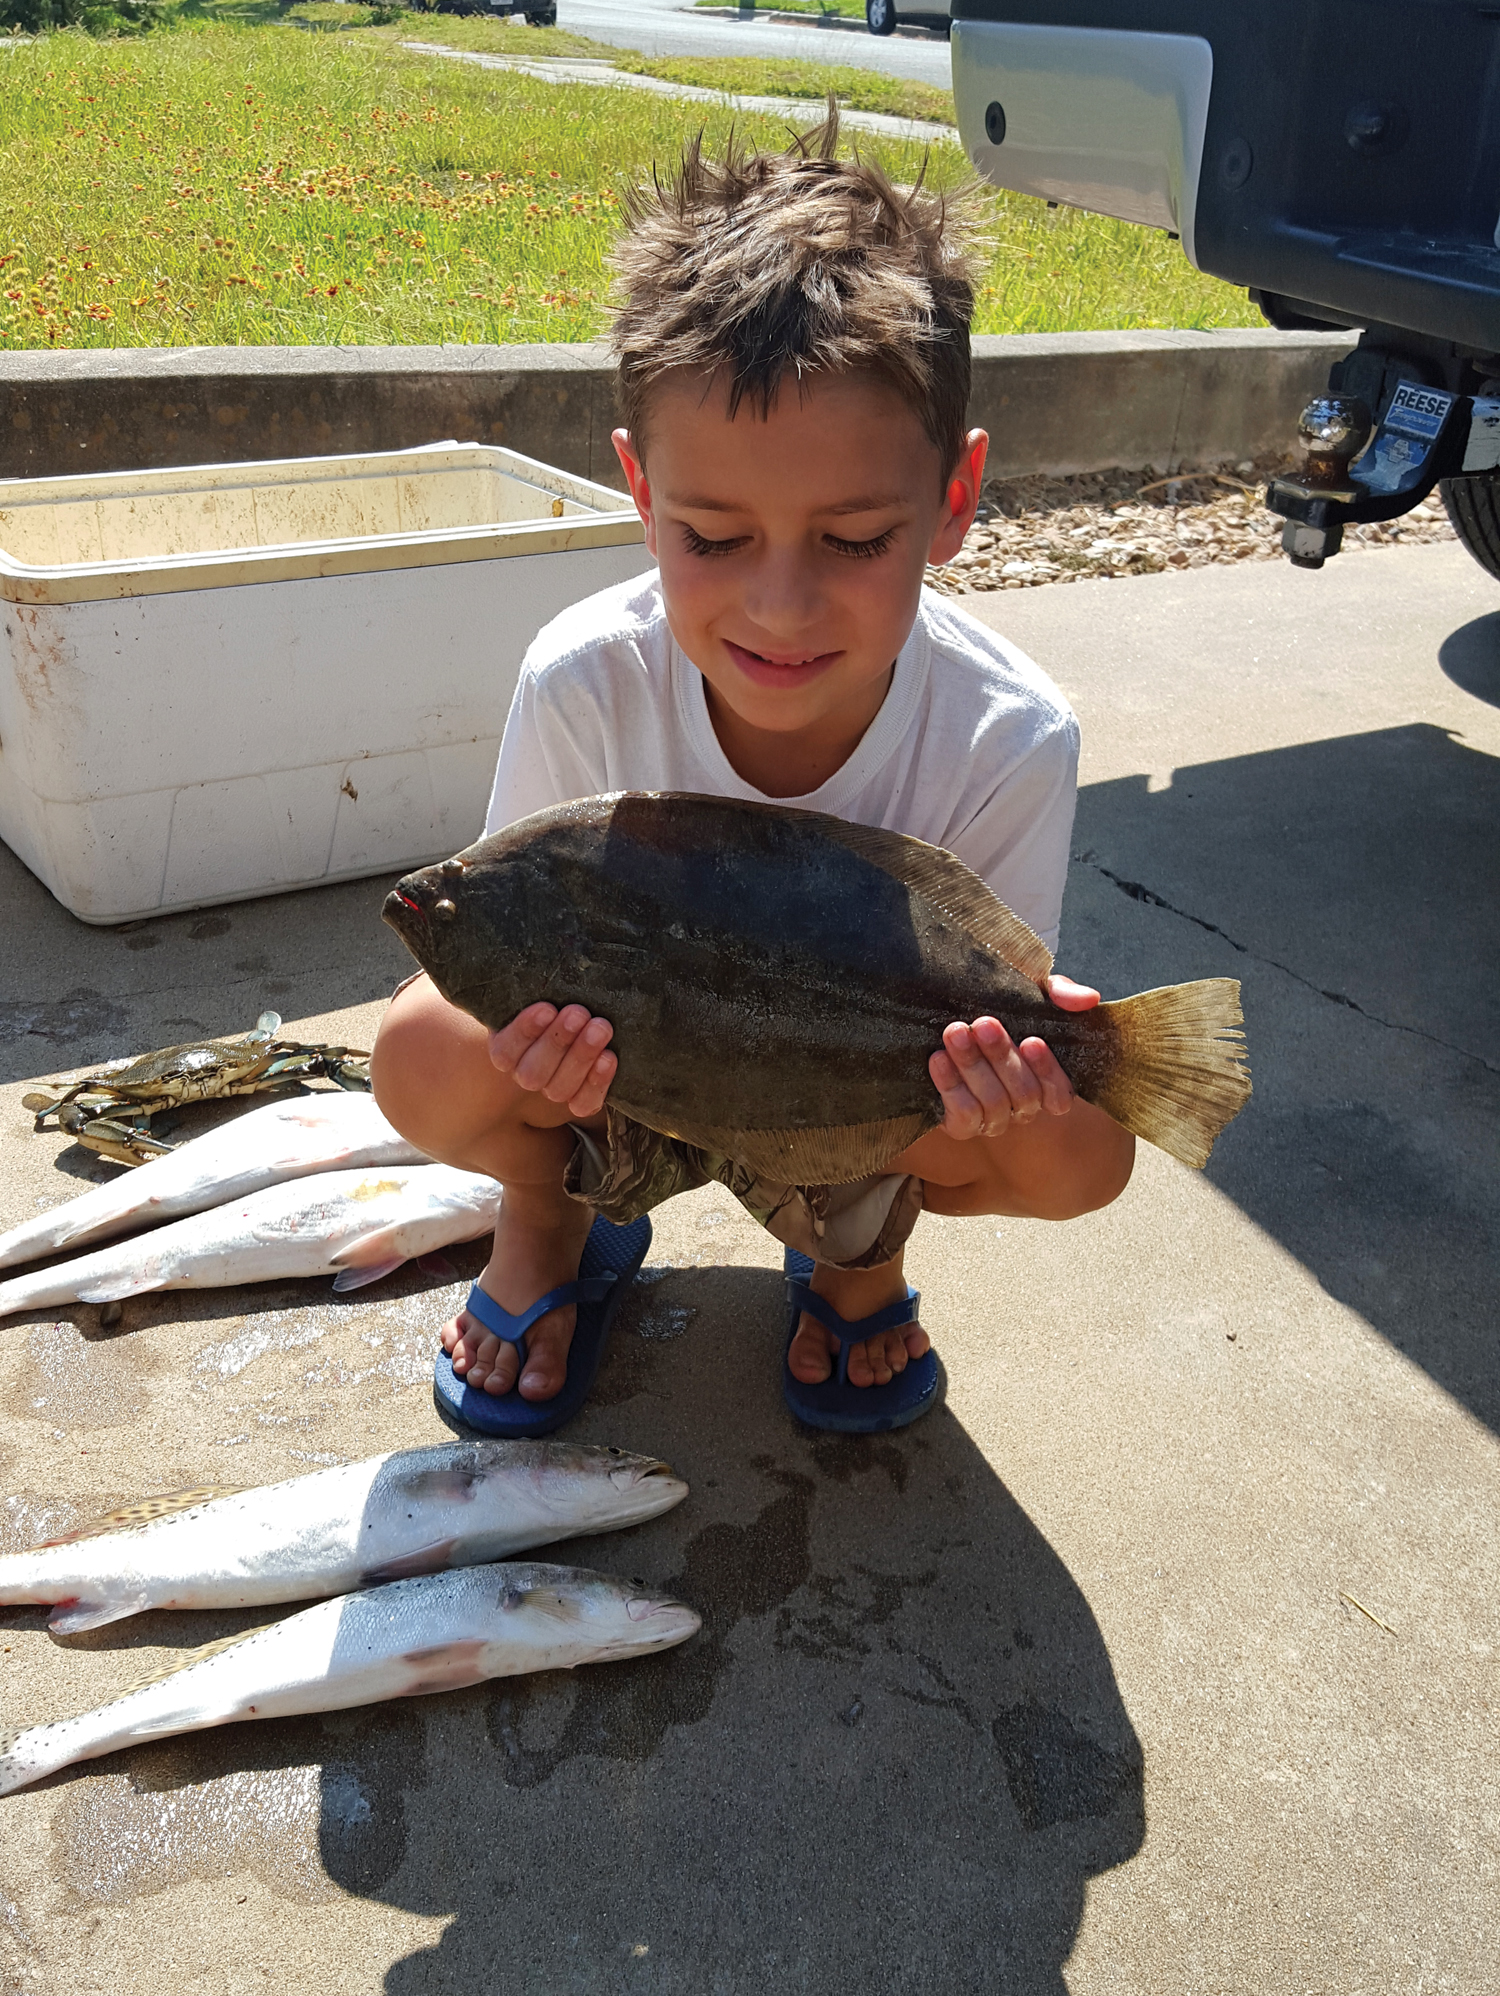 Timothy Koenning with his first flounder! He caught the 17-inch flattie on live shrimp while fishing with his dad and stepmom in West Bay. Four trout, from 16-21 inches were caught as well.